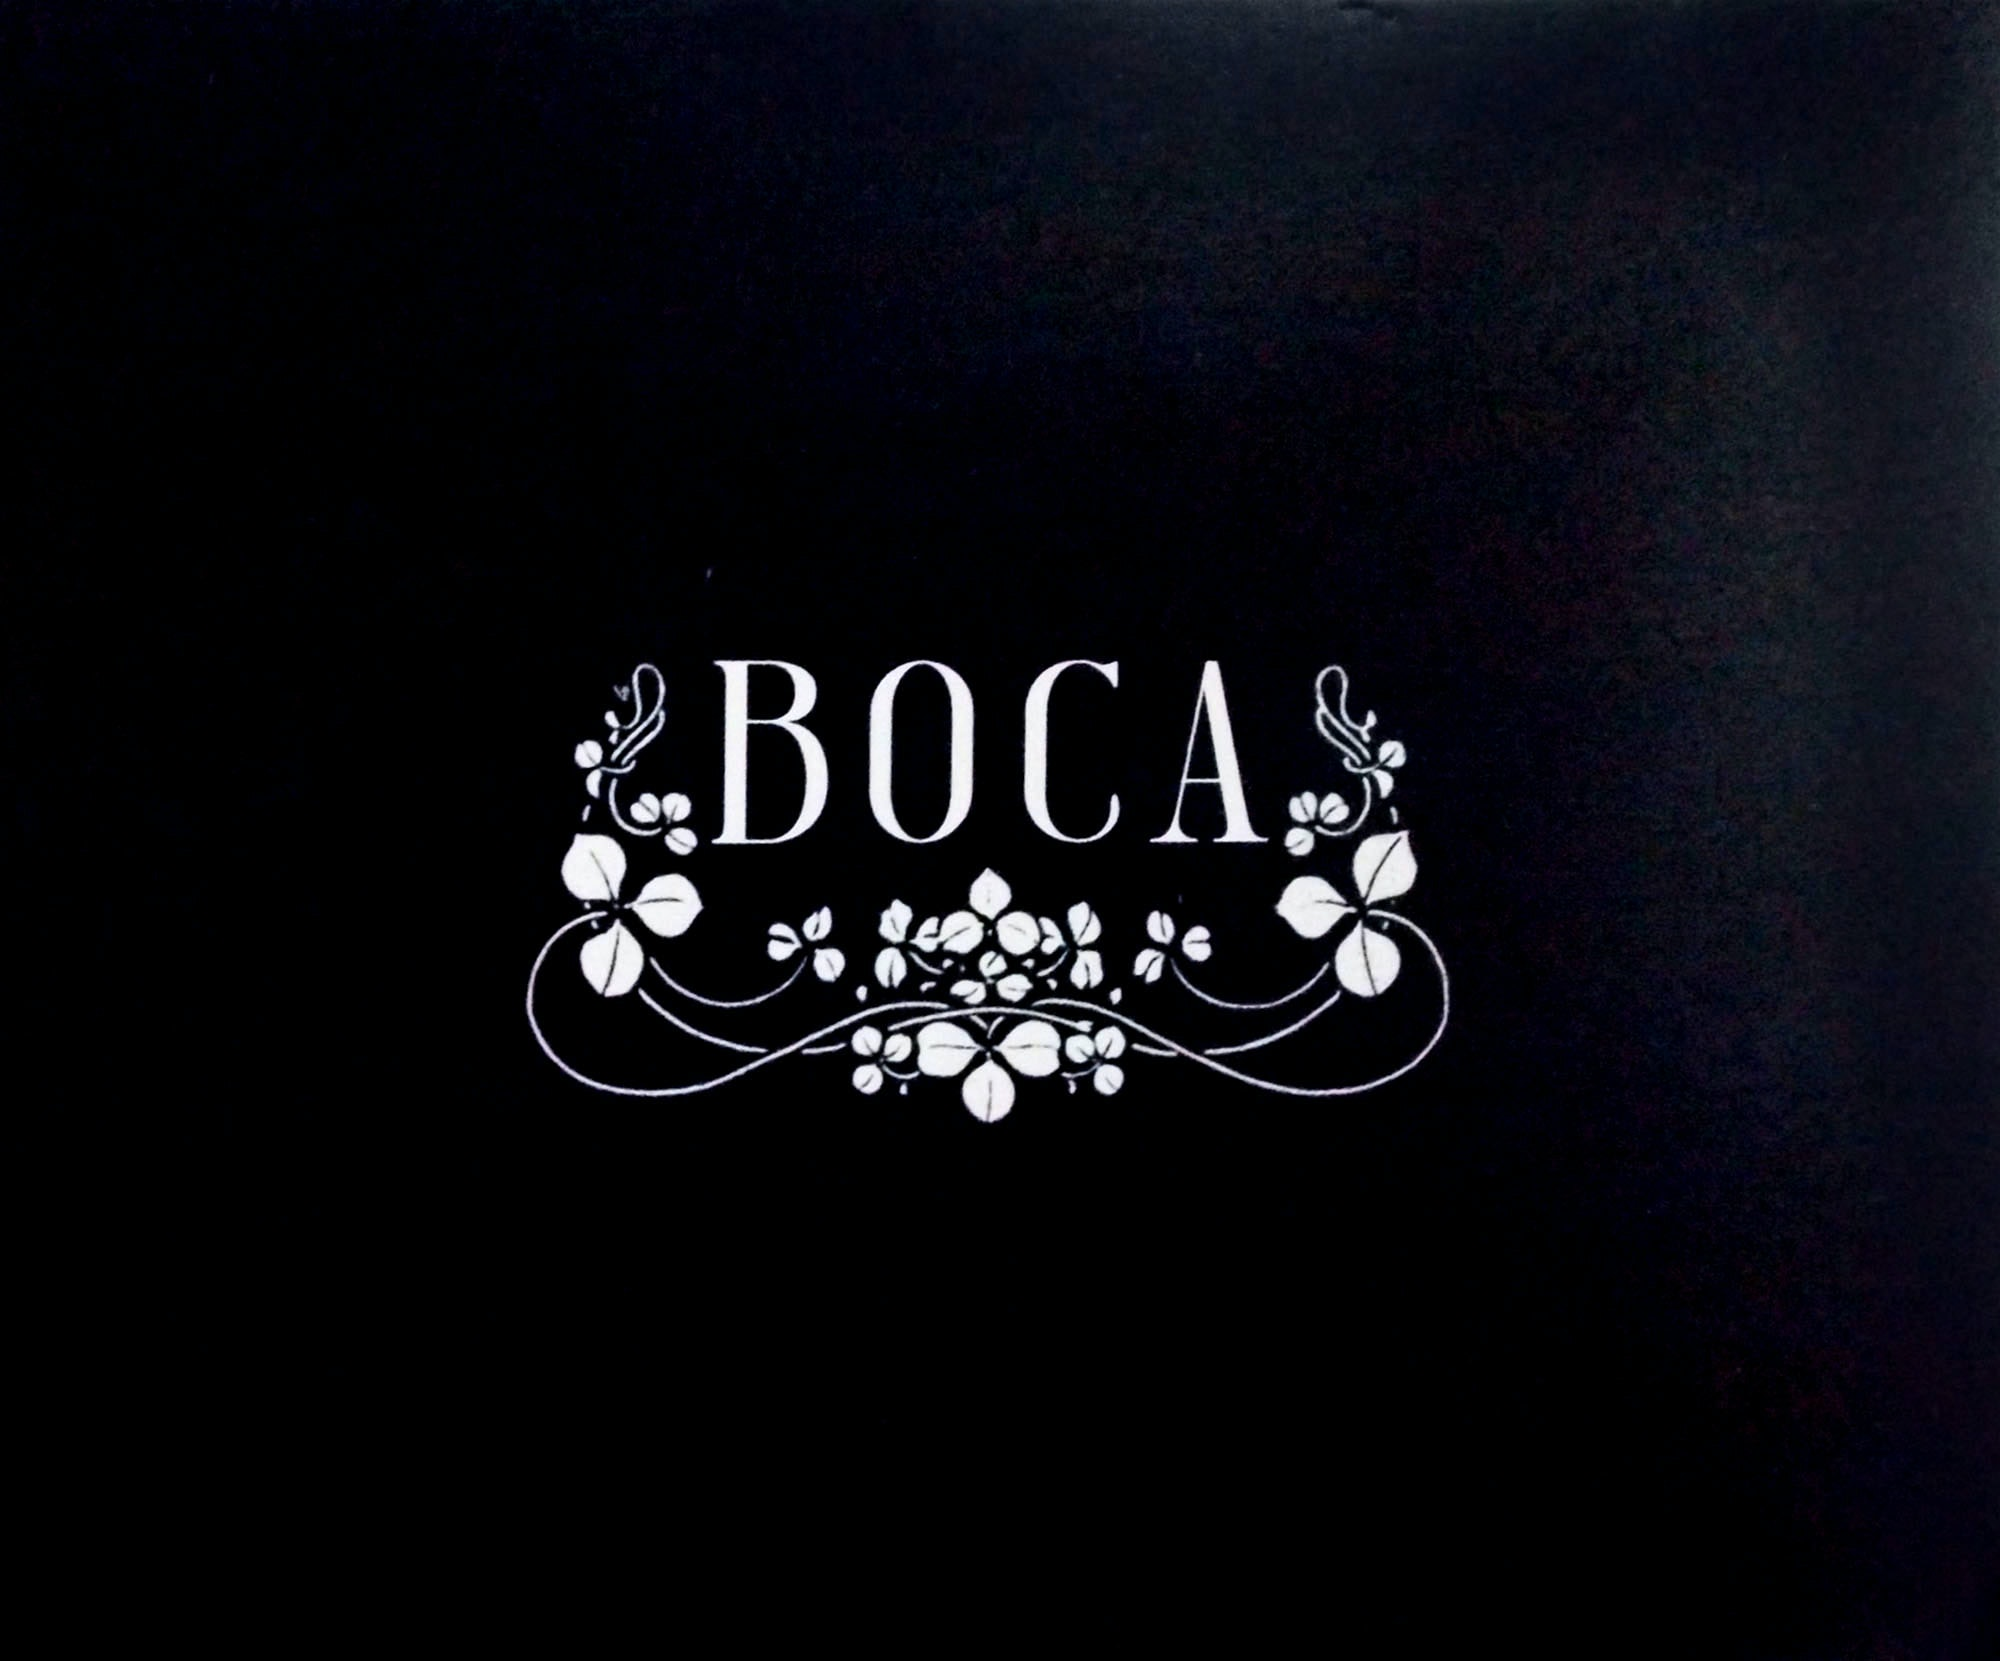 $100 Entertainment Card for Boca Restaurant